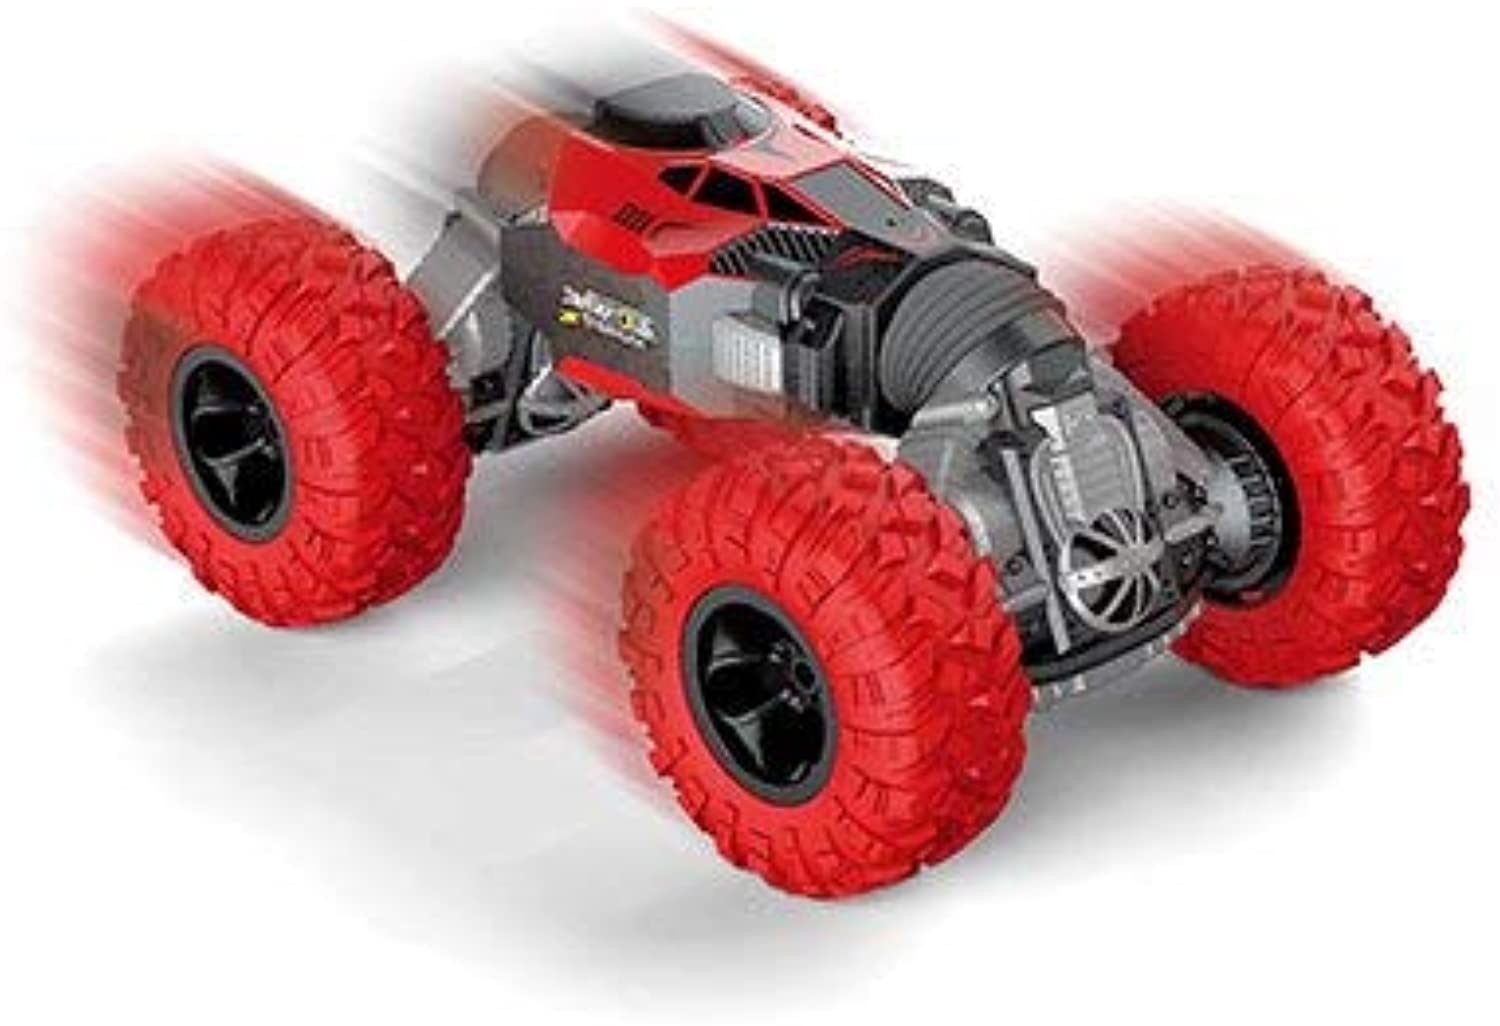 Generic 1 16 DoubleSided Twisted RC Cars Remote Control Electric Crawl Off Road Truck Toys for Gifts Red